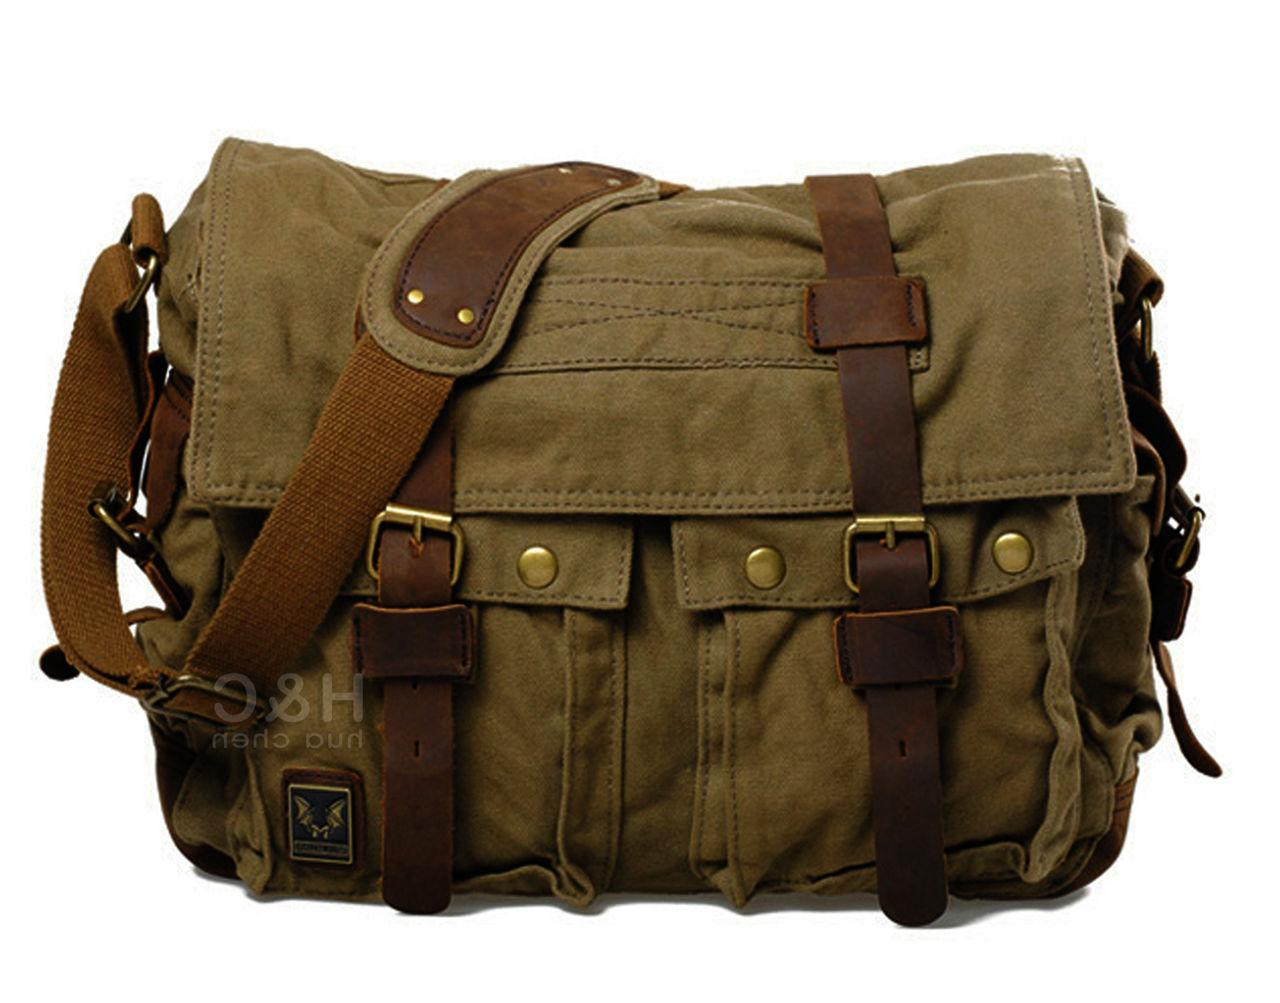 Men's Military Satchel Shoulder Messenger Bag